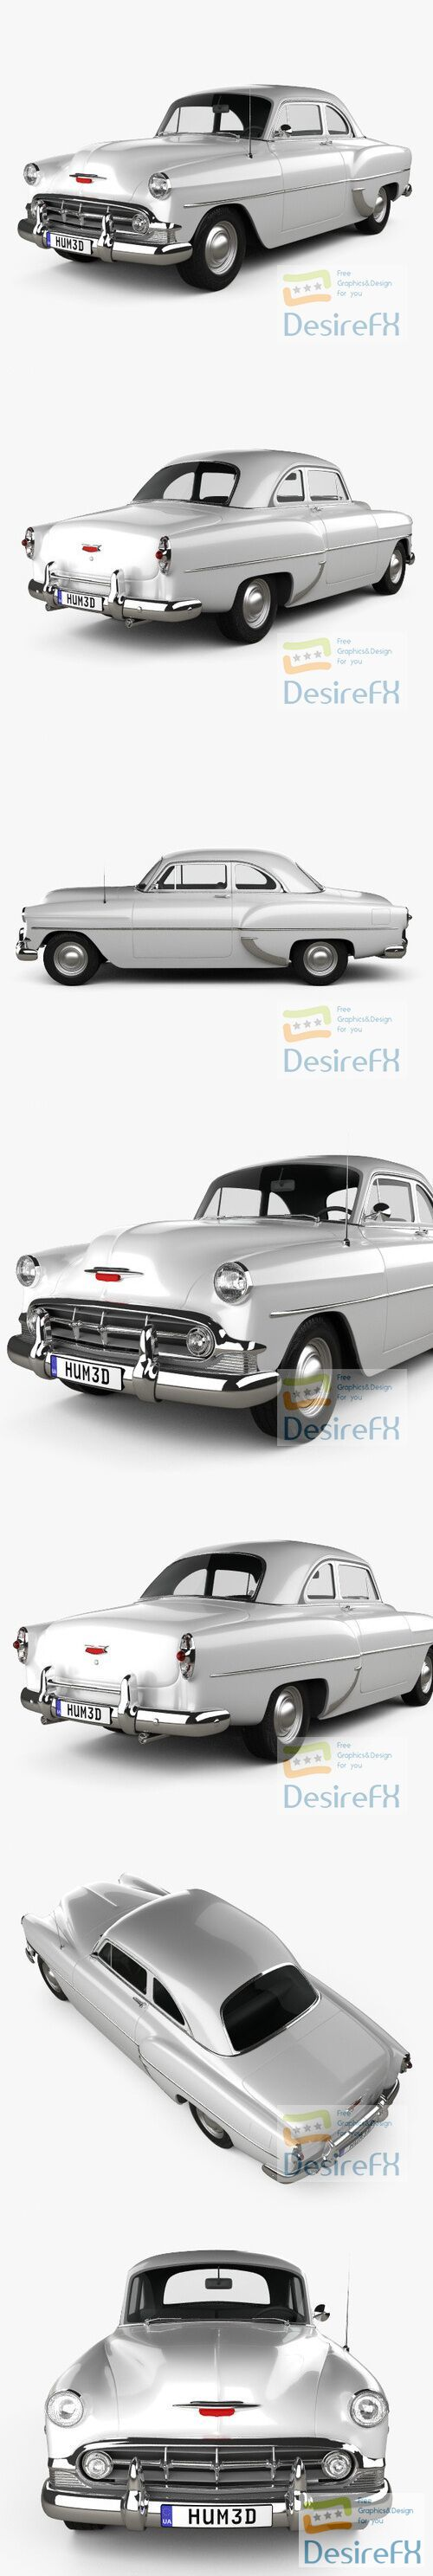 Chevrolet 210 Club Coupe 1953 3D Model